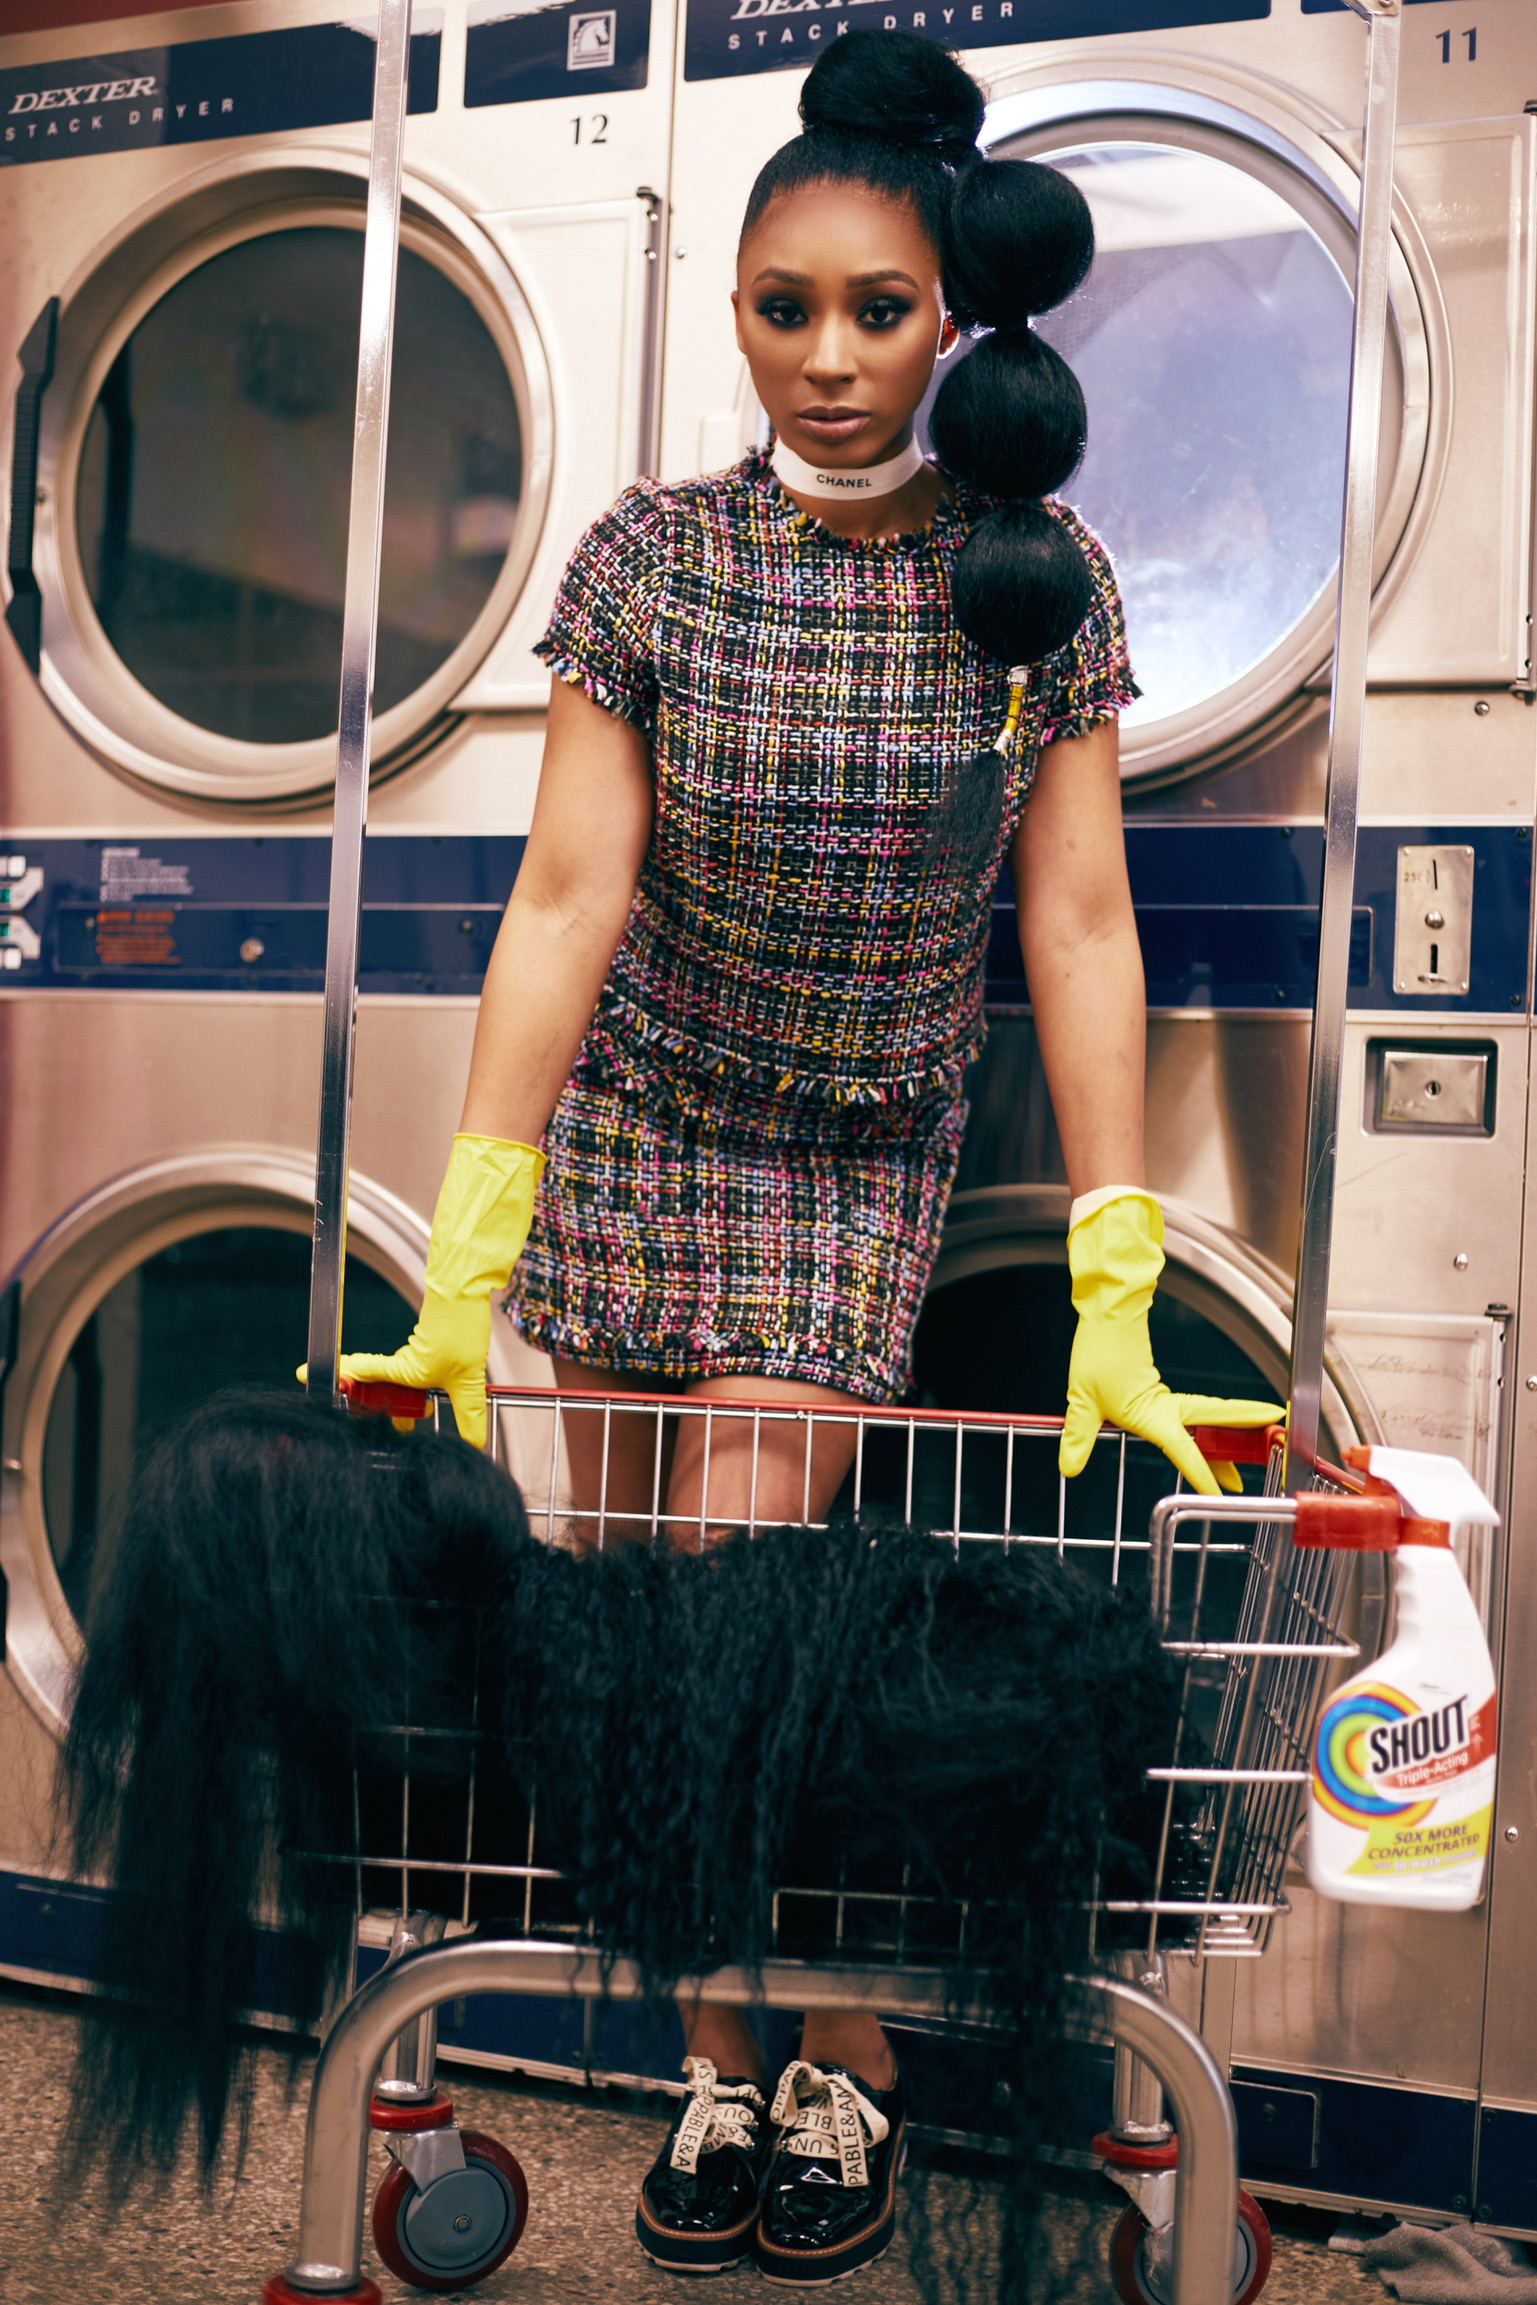 Washing Your Hair Just Got Easier - 10 Tips to lighten the load for an easy, hassle-free wash day